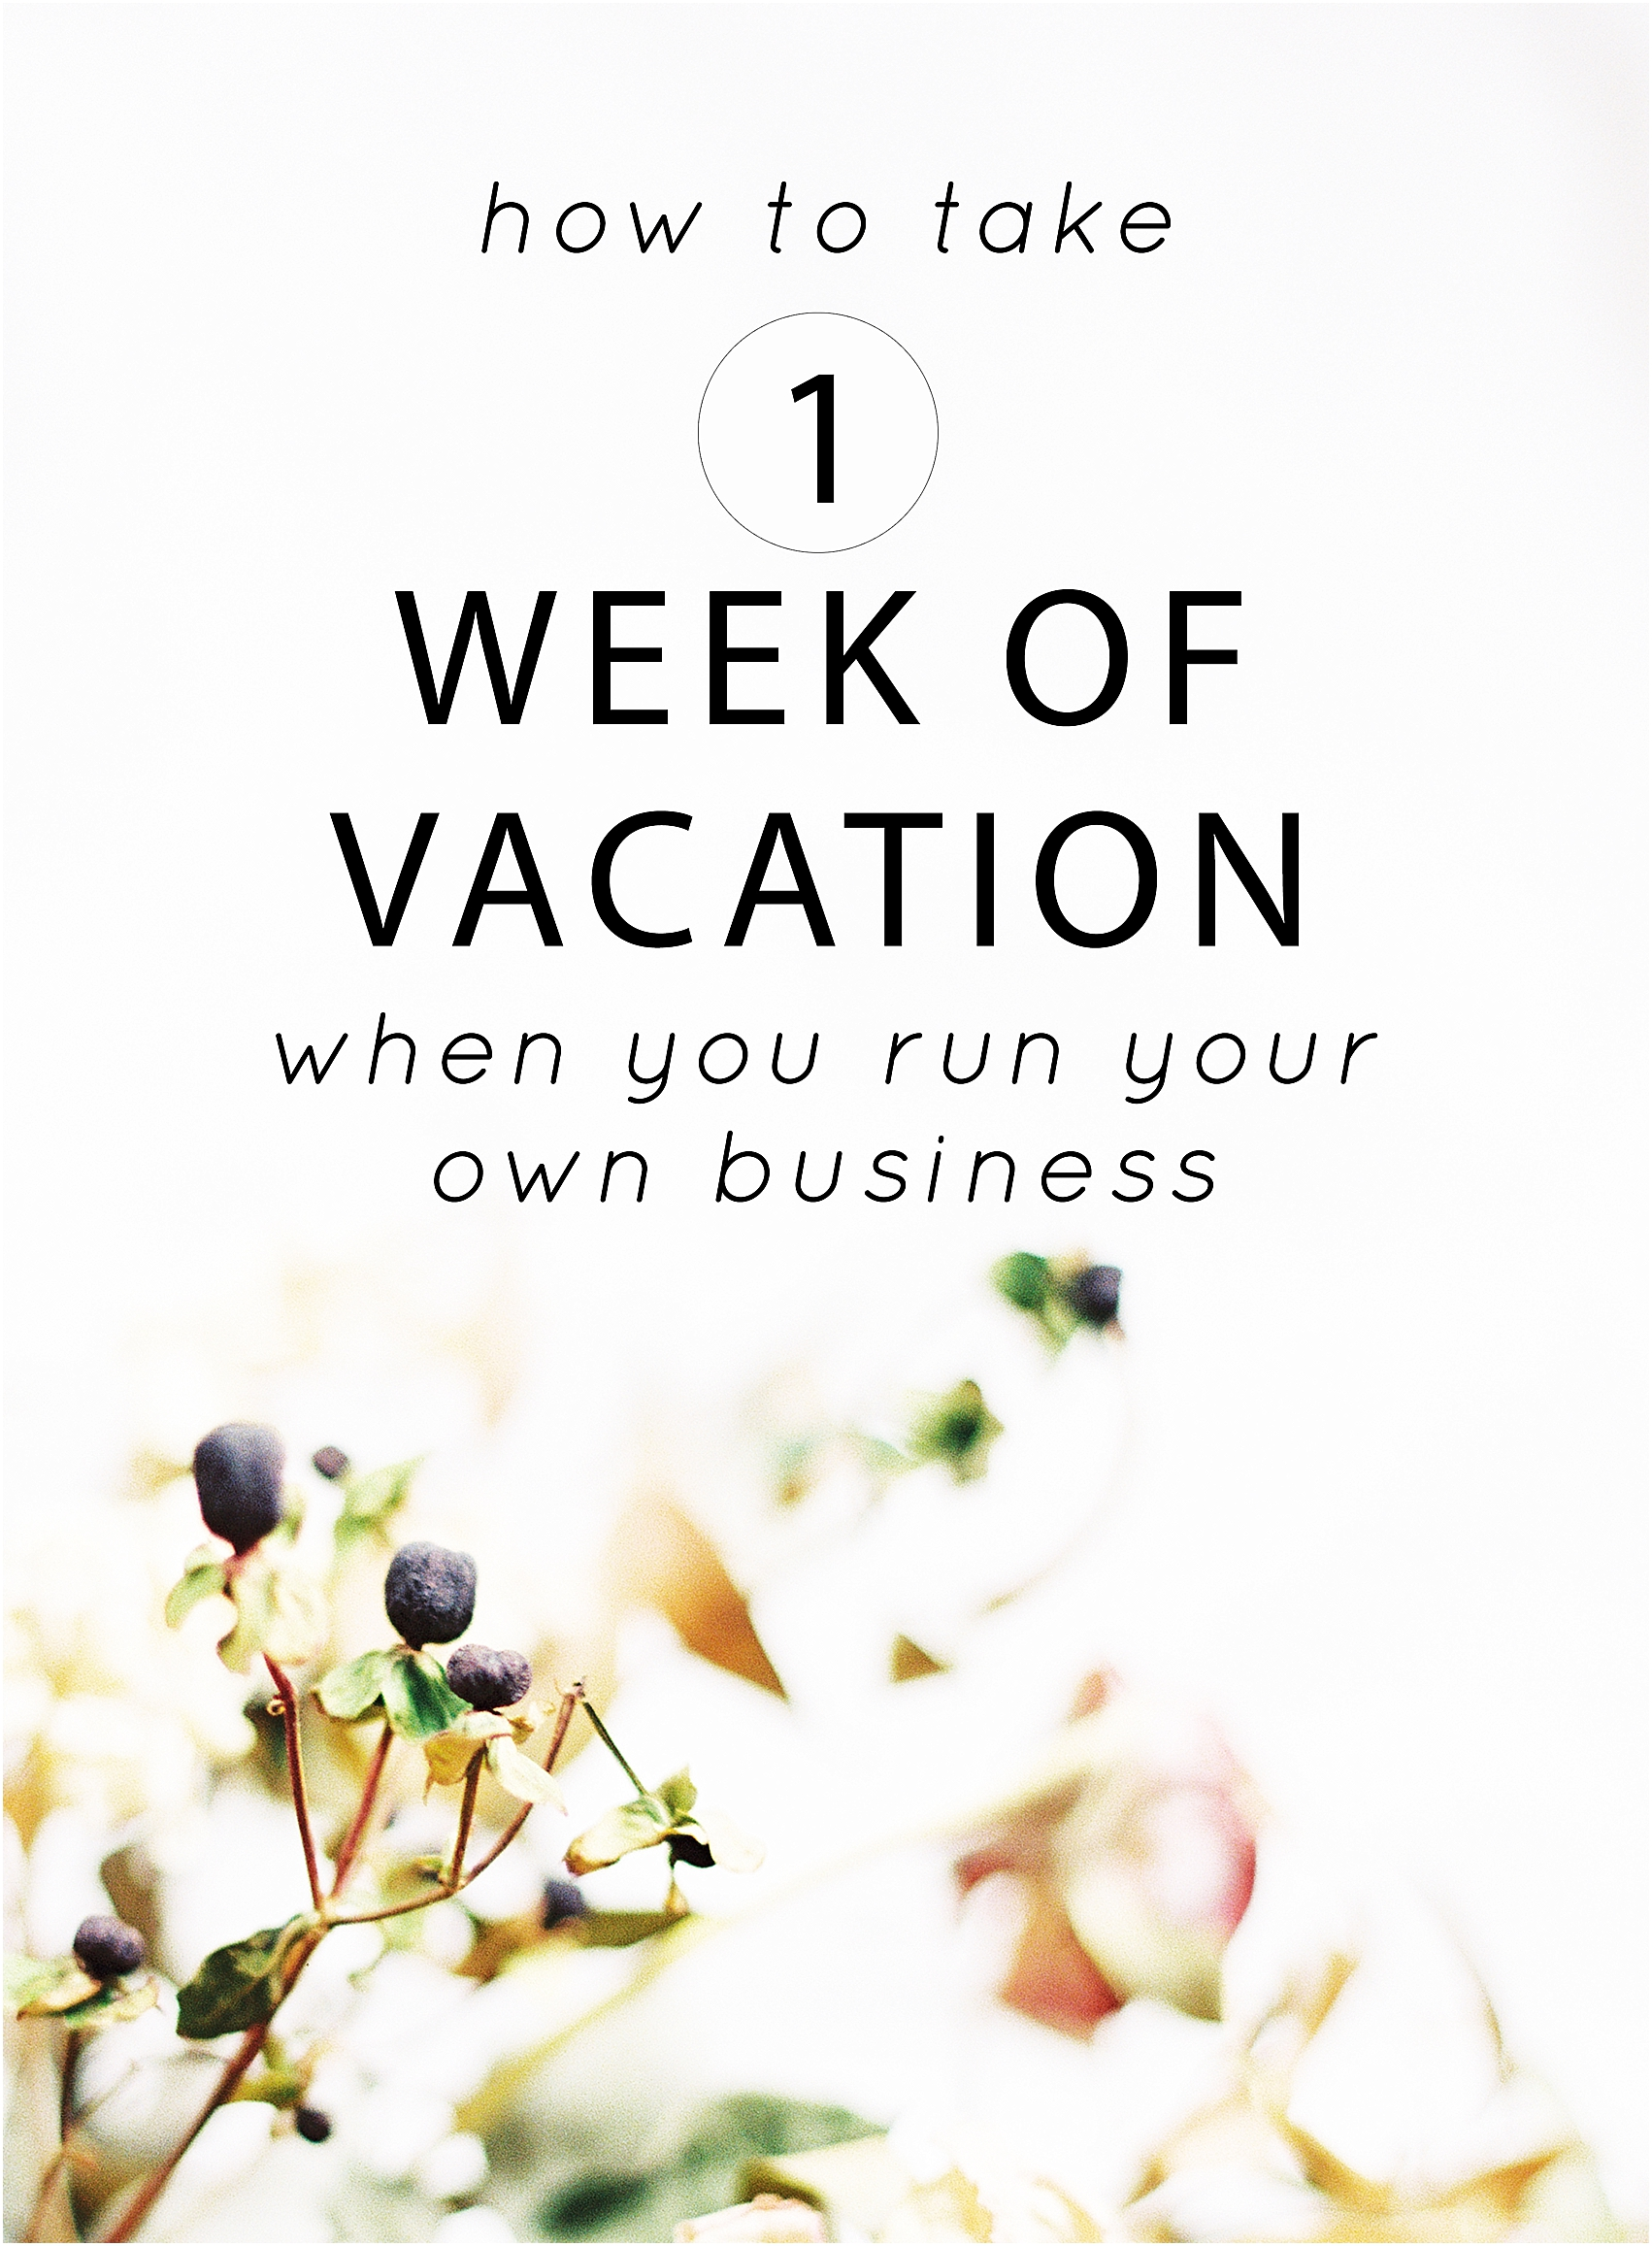 How to take one week of vacation when you run your own business - The Jordan Brittley Blog (www.jordanbrittleyblog.com)